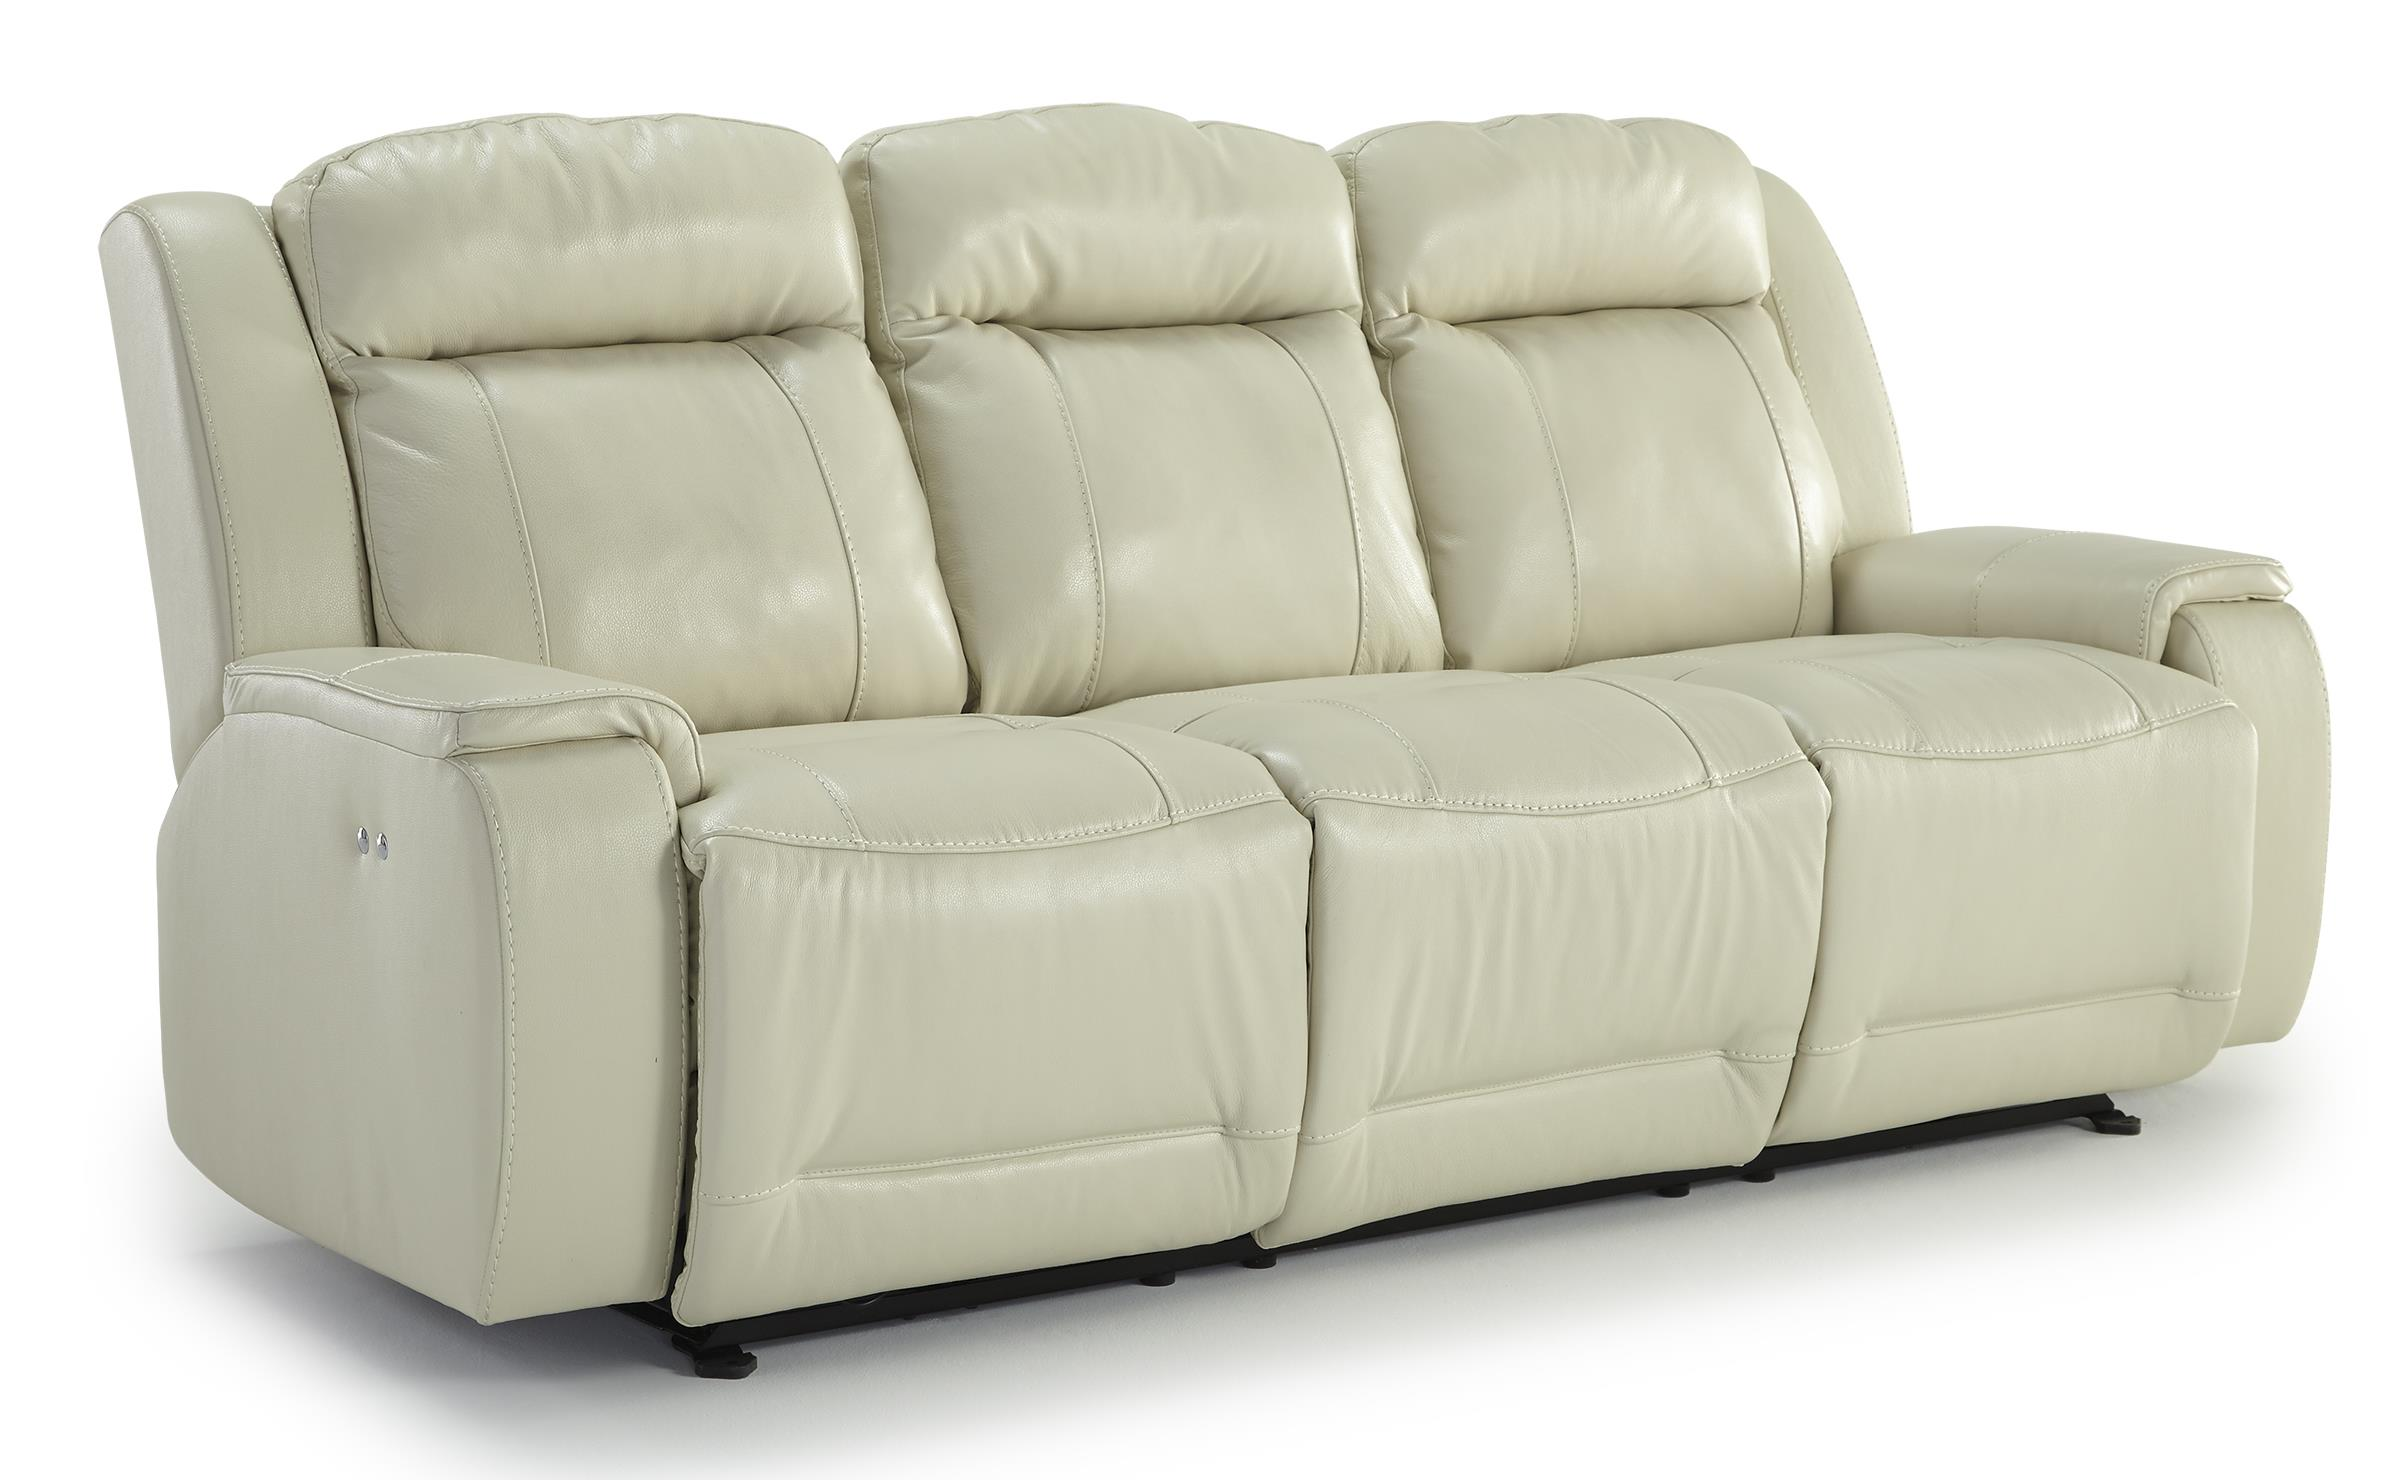 Hardisty Reclining Sofa by Best Home Furnishings at Lapeer Furniture & Mattress Center